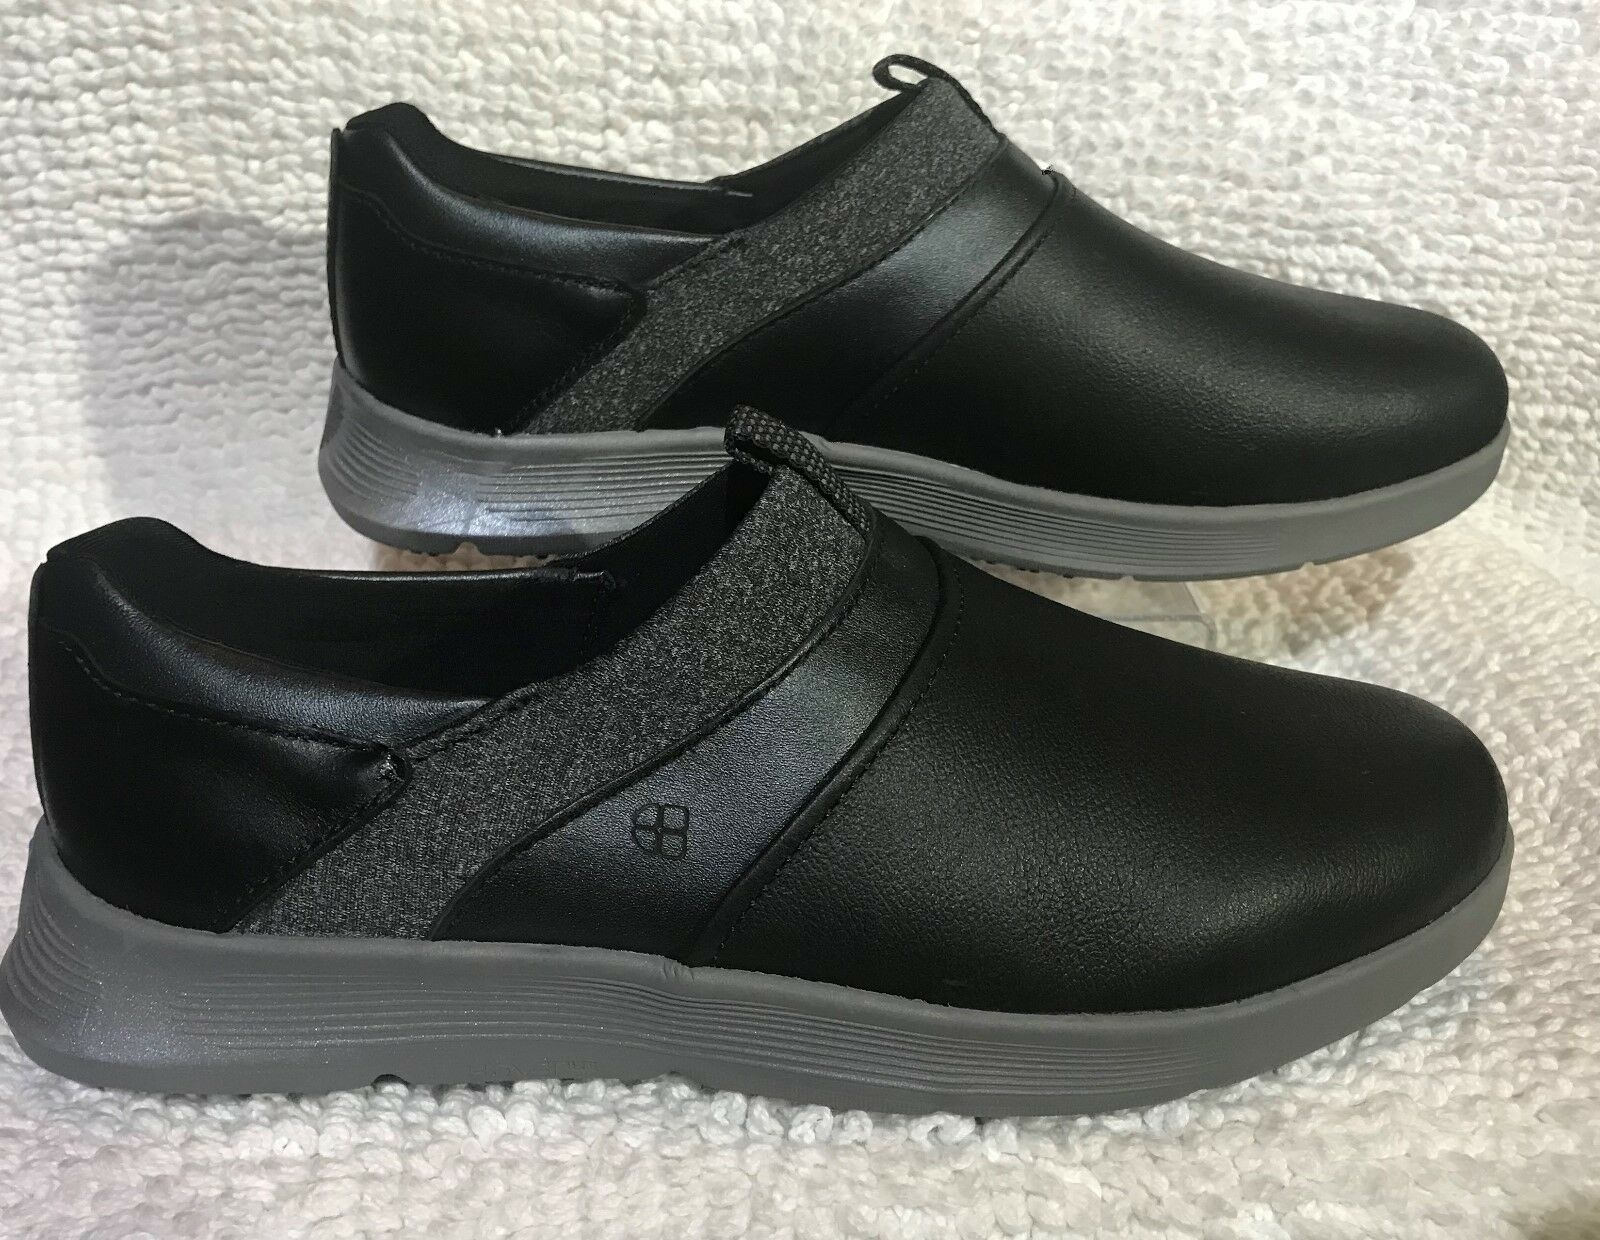 Brand New Shoes for Crews Shoes Boots Men and Women NO BOX